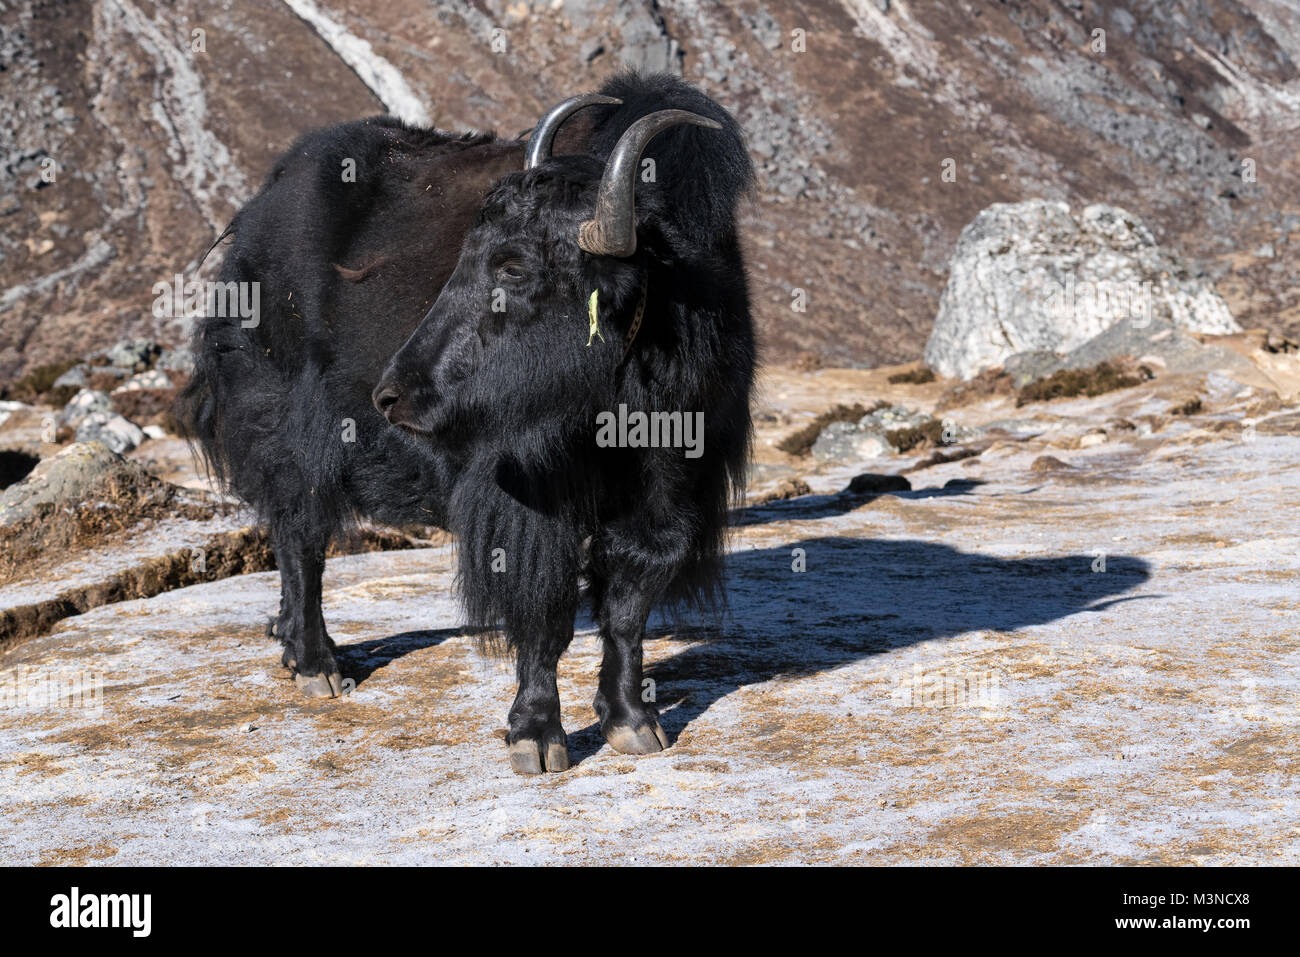 Yak animal in the Nepalese mountains, Nepal - Stock Image